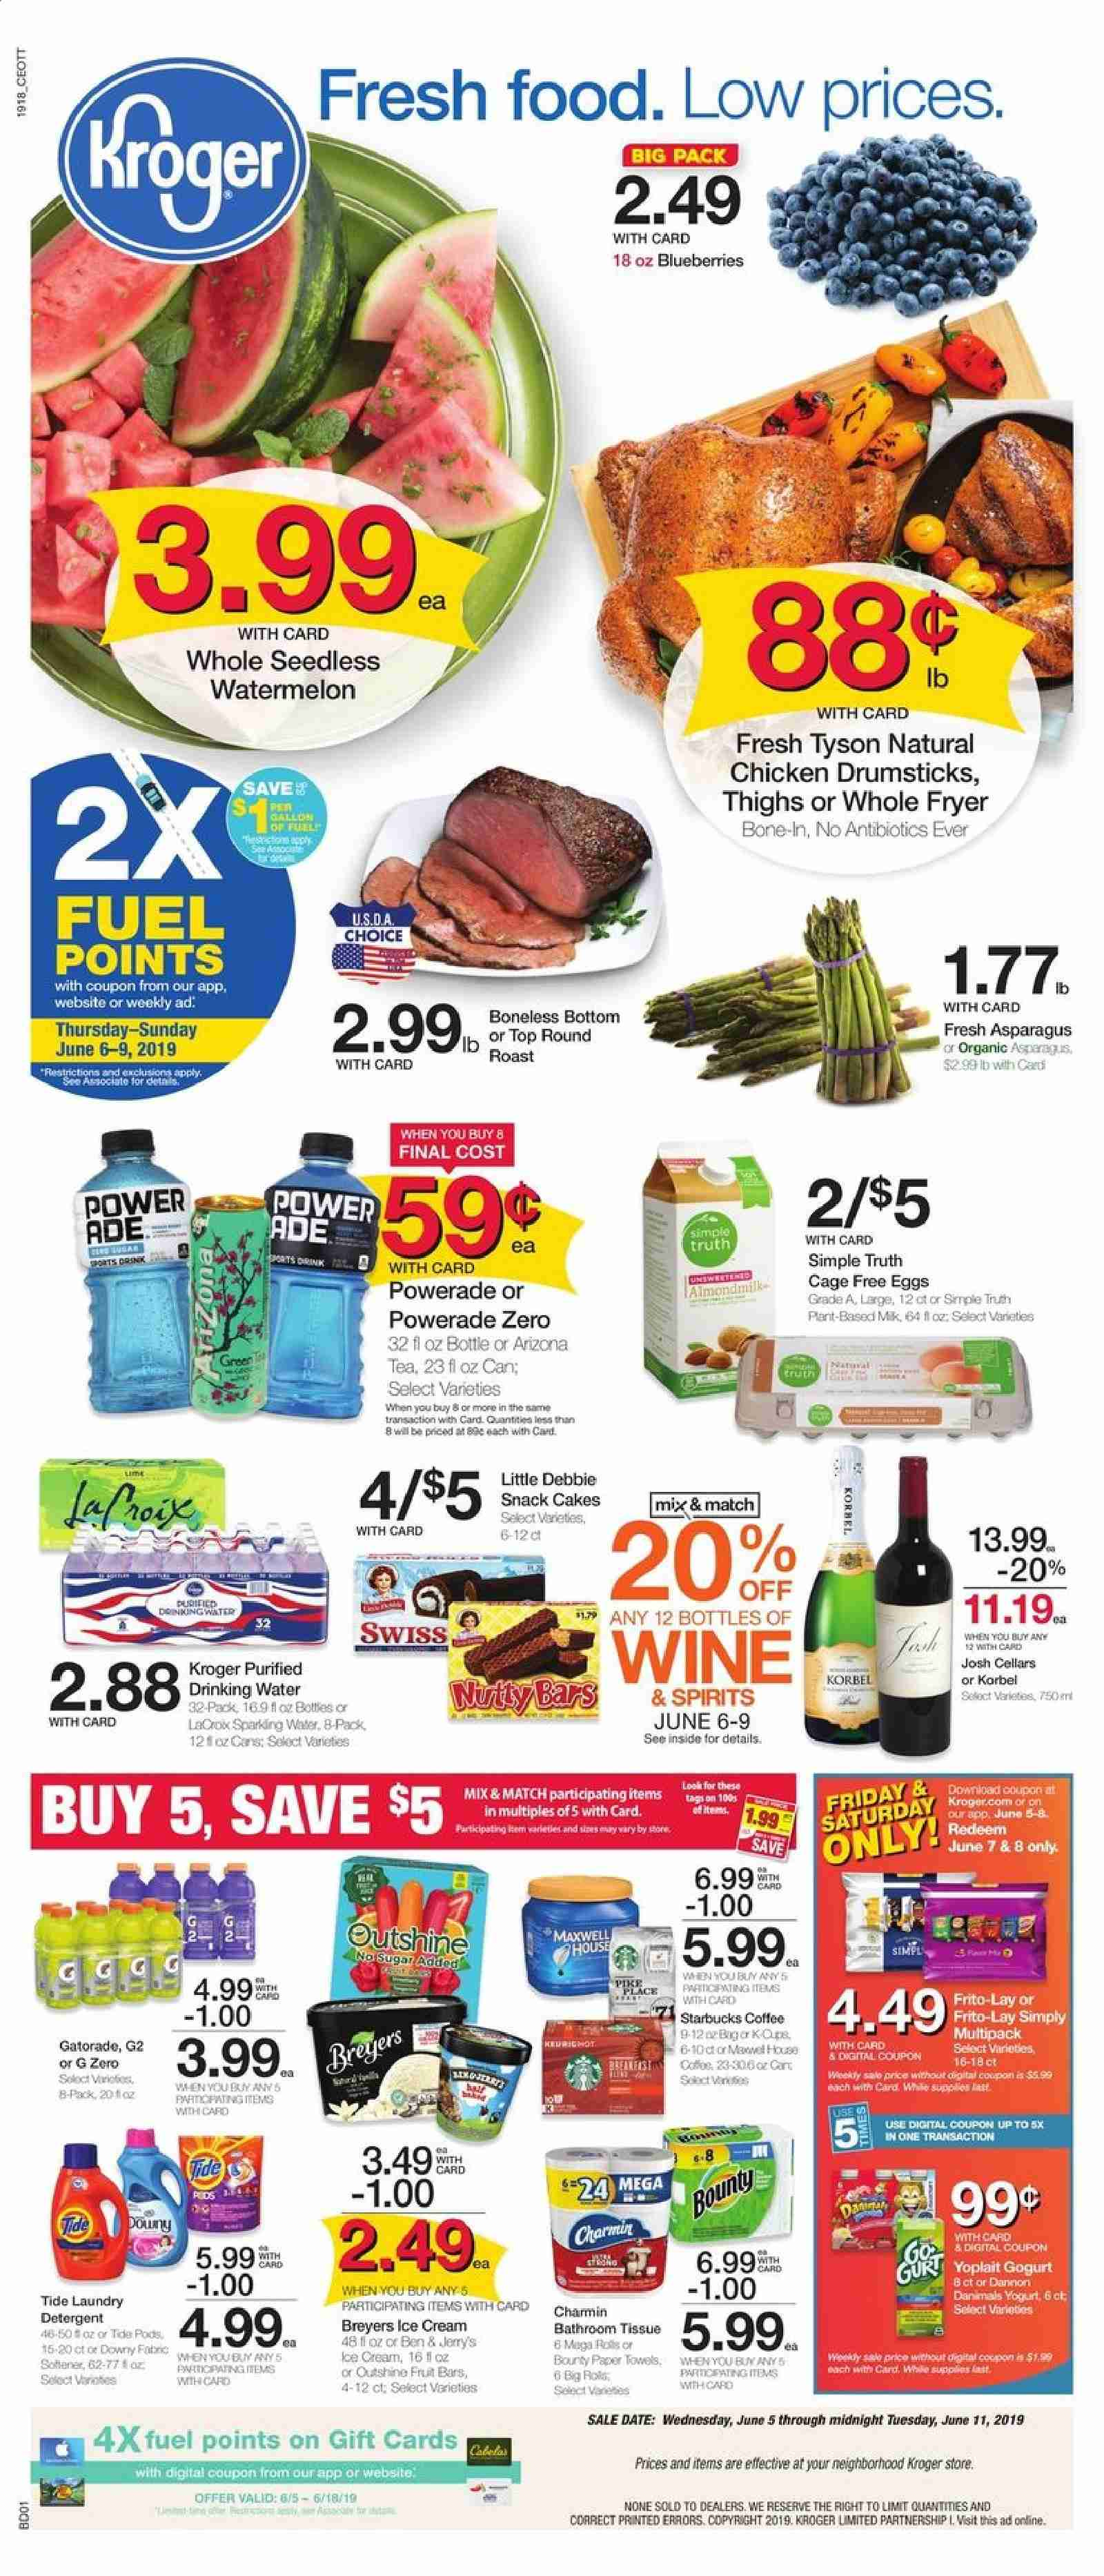 Kroger Flyer - 06.05.2019 - 06.11.2019 - Sales products - asparagus, blueberries, watermelon, cake, eggs, Bounty, snack, sugar, Powerade, water, green tea, tea, wine, chicken, chicken legs, paper towel, detergent, Downy, Tide, softener, laundry detergent, pen, fryer, fuel, Starbucks, cream. Page 1.